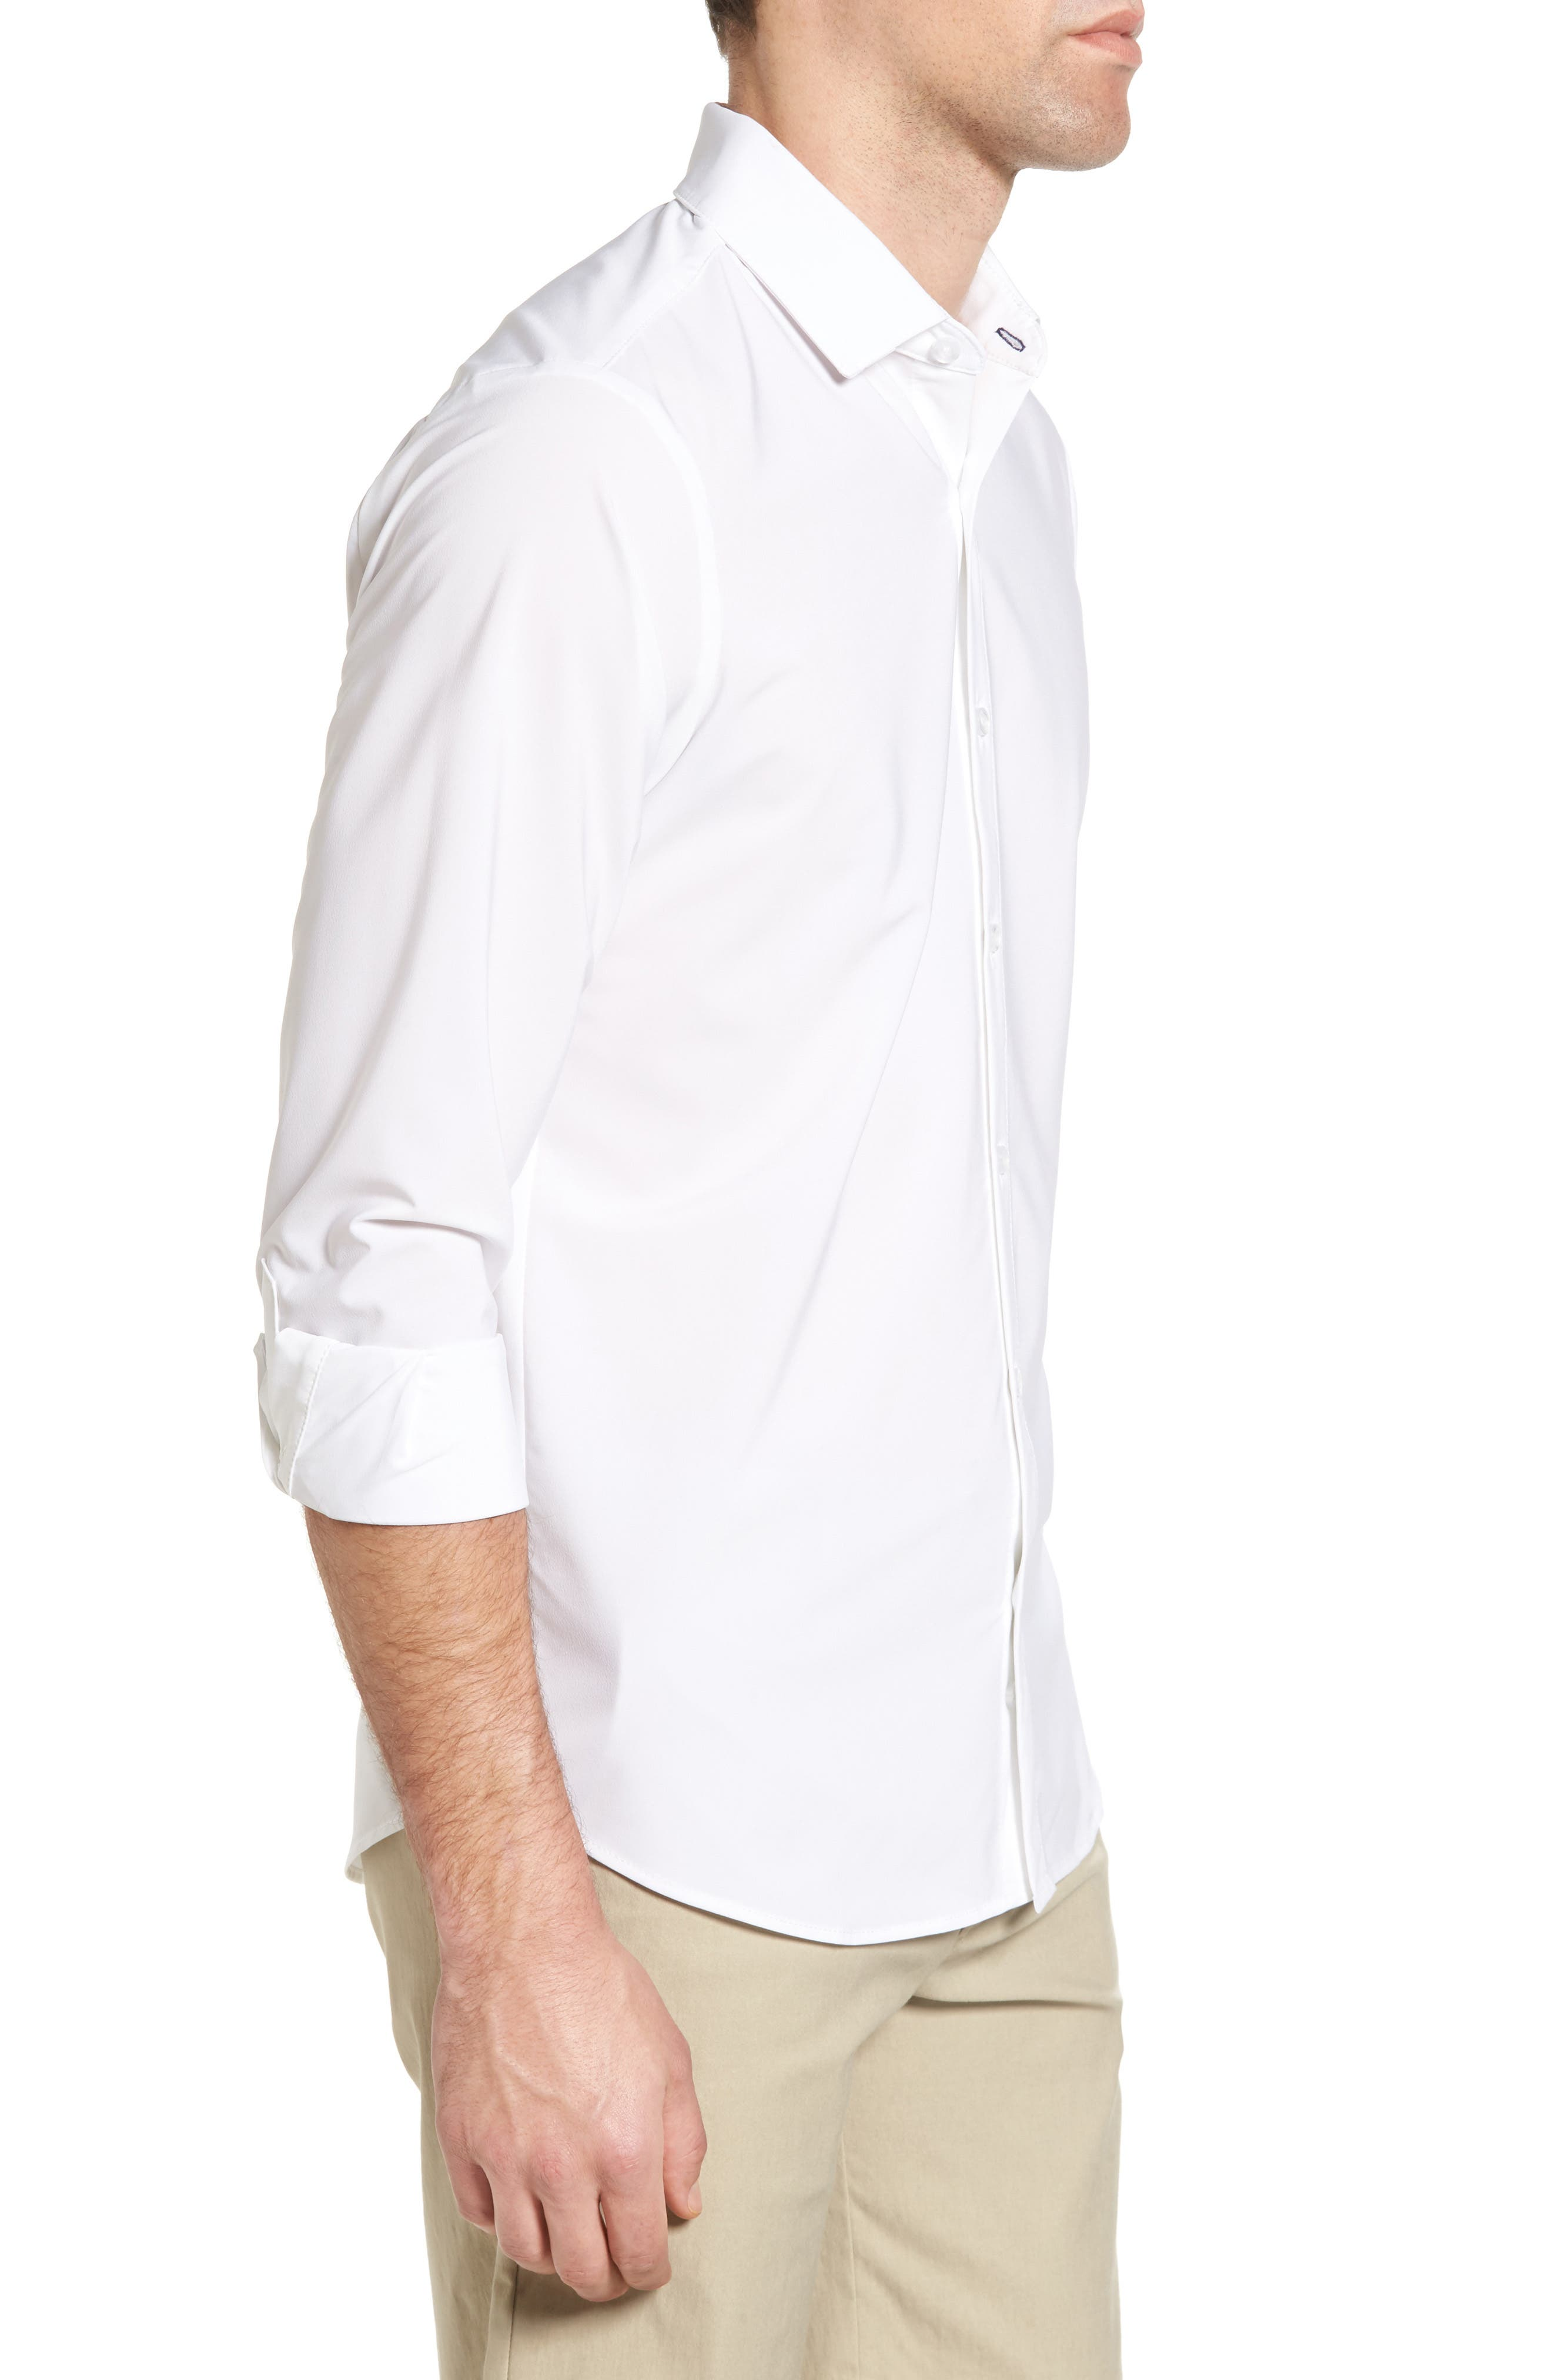 Manhattan Sport Shirt,                             Alternate thumbnail 4, color,                             White